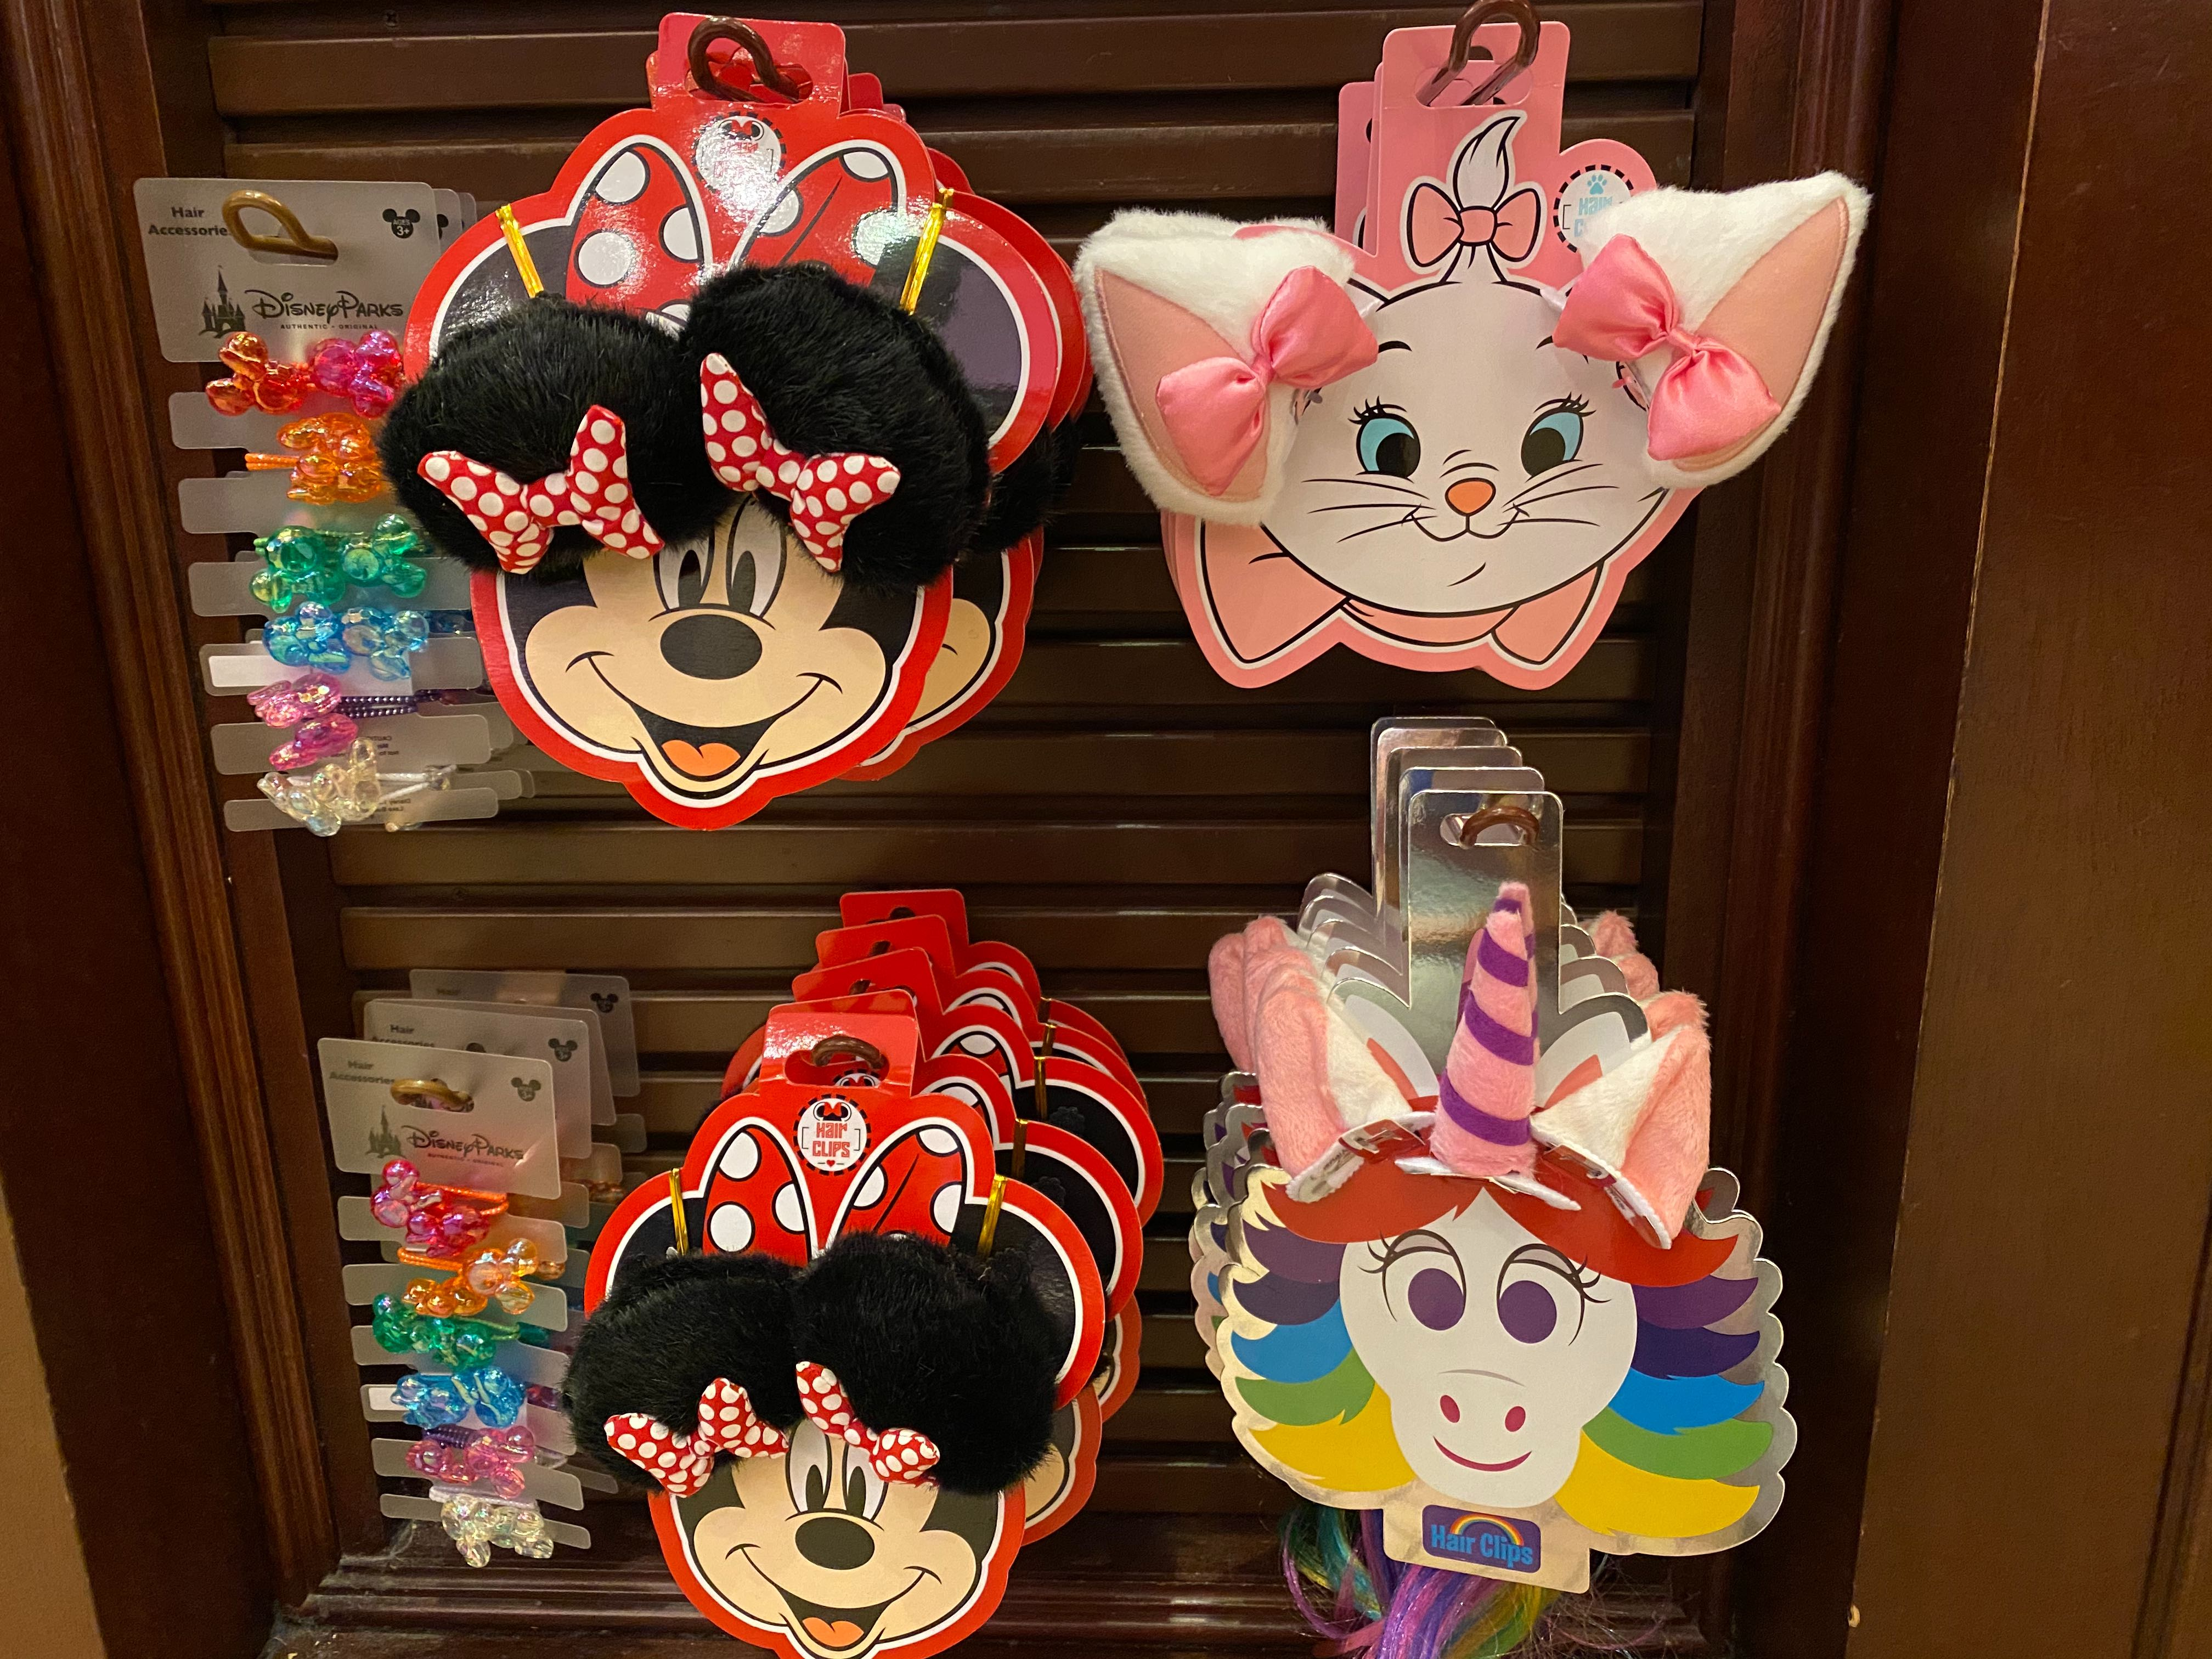 New Character Hair Clip Accessories (Minnie Mouse, Marie, Rainbow Unicorn) Arrive at Disneyland